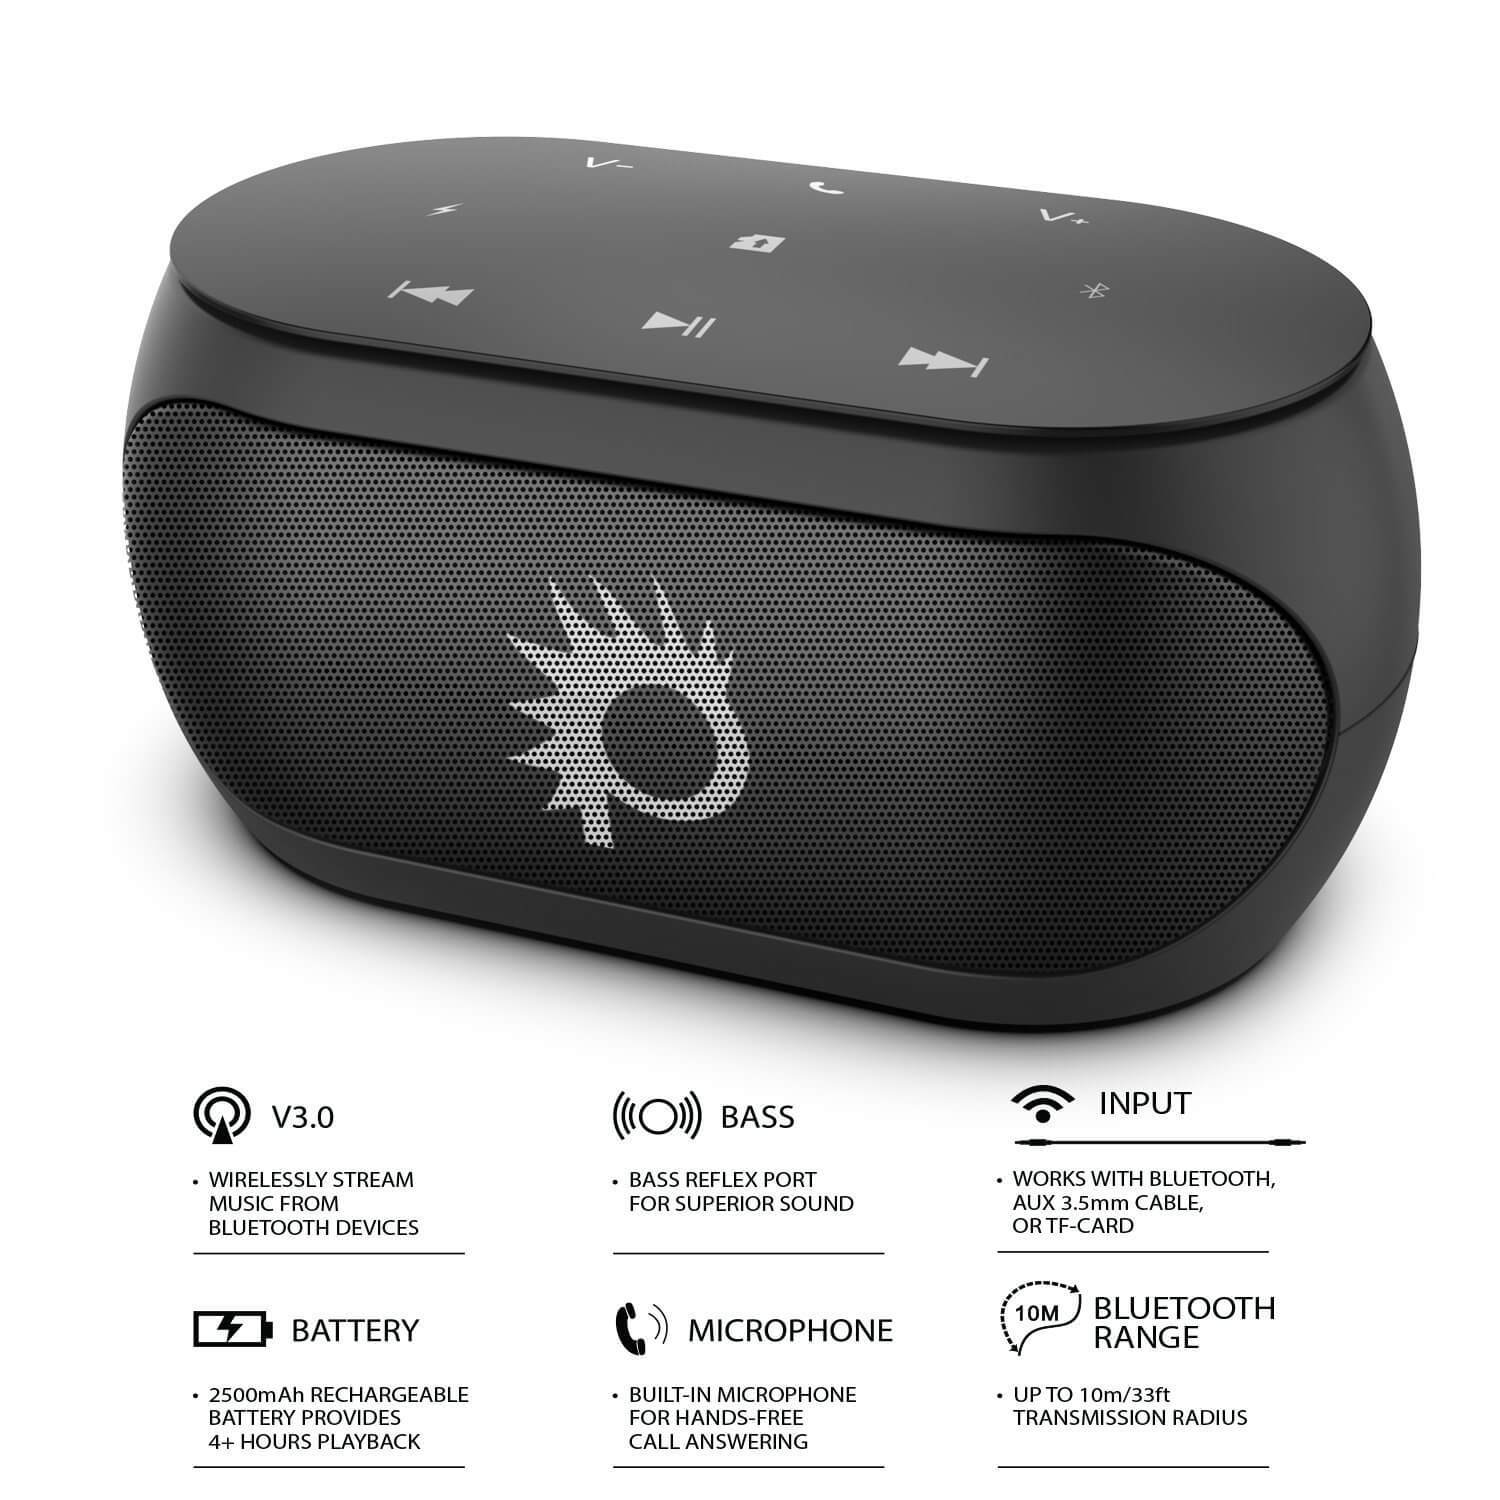 Punkcase SILENCER Powerful and Portable Bluetooth Speaker W/Enhanced Bass TF/SD Card Slot/AUX Input, Hands Free Speakerphone W/Mic